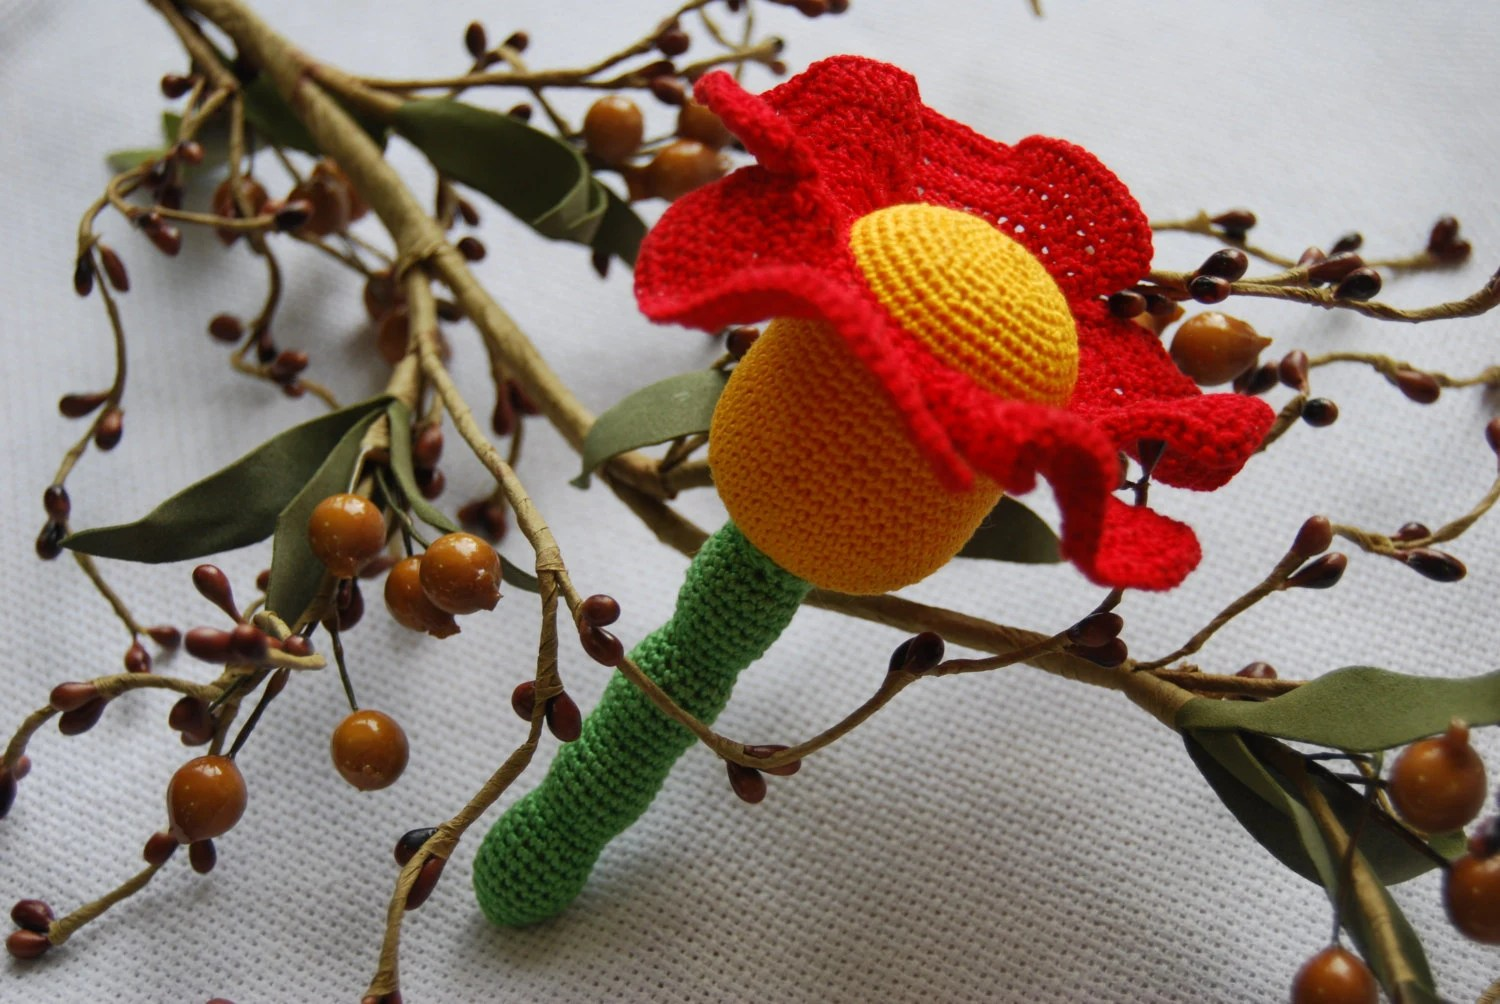 Children's toy /Teeth teether/ Wooden knitting with crochet  toy/ toy with flower - Rainbowcaterpillar